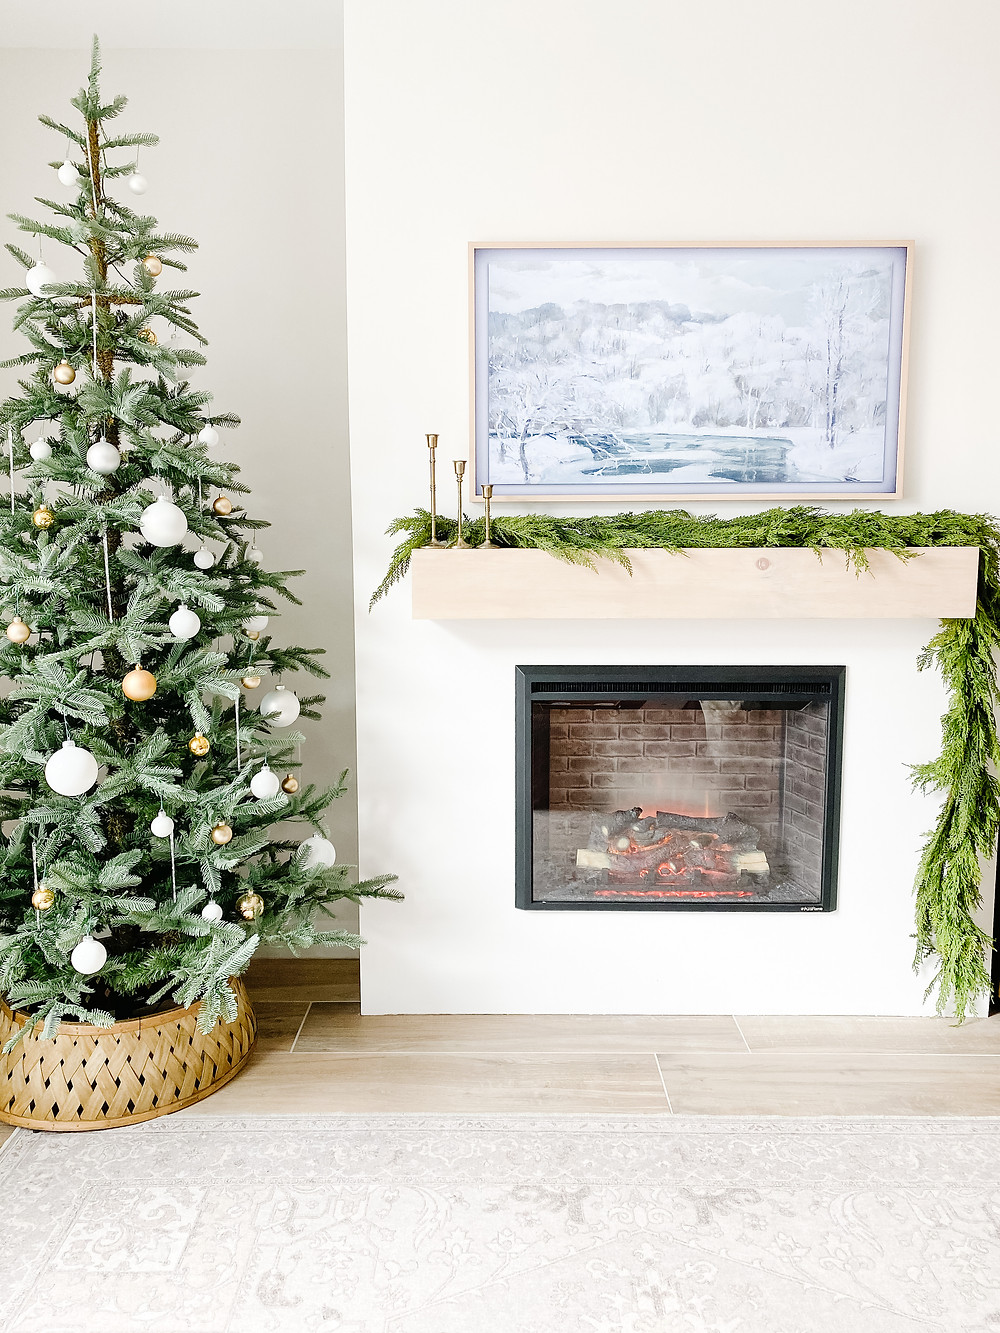 Finished DIY Fireplace with Electric Insert decorated for Christmas with holiday garland